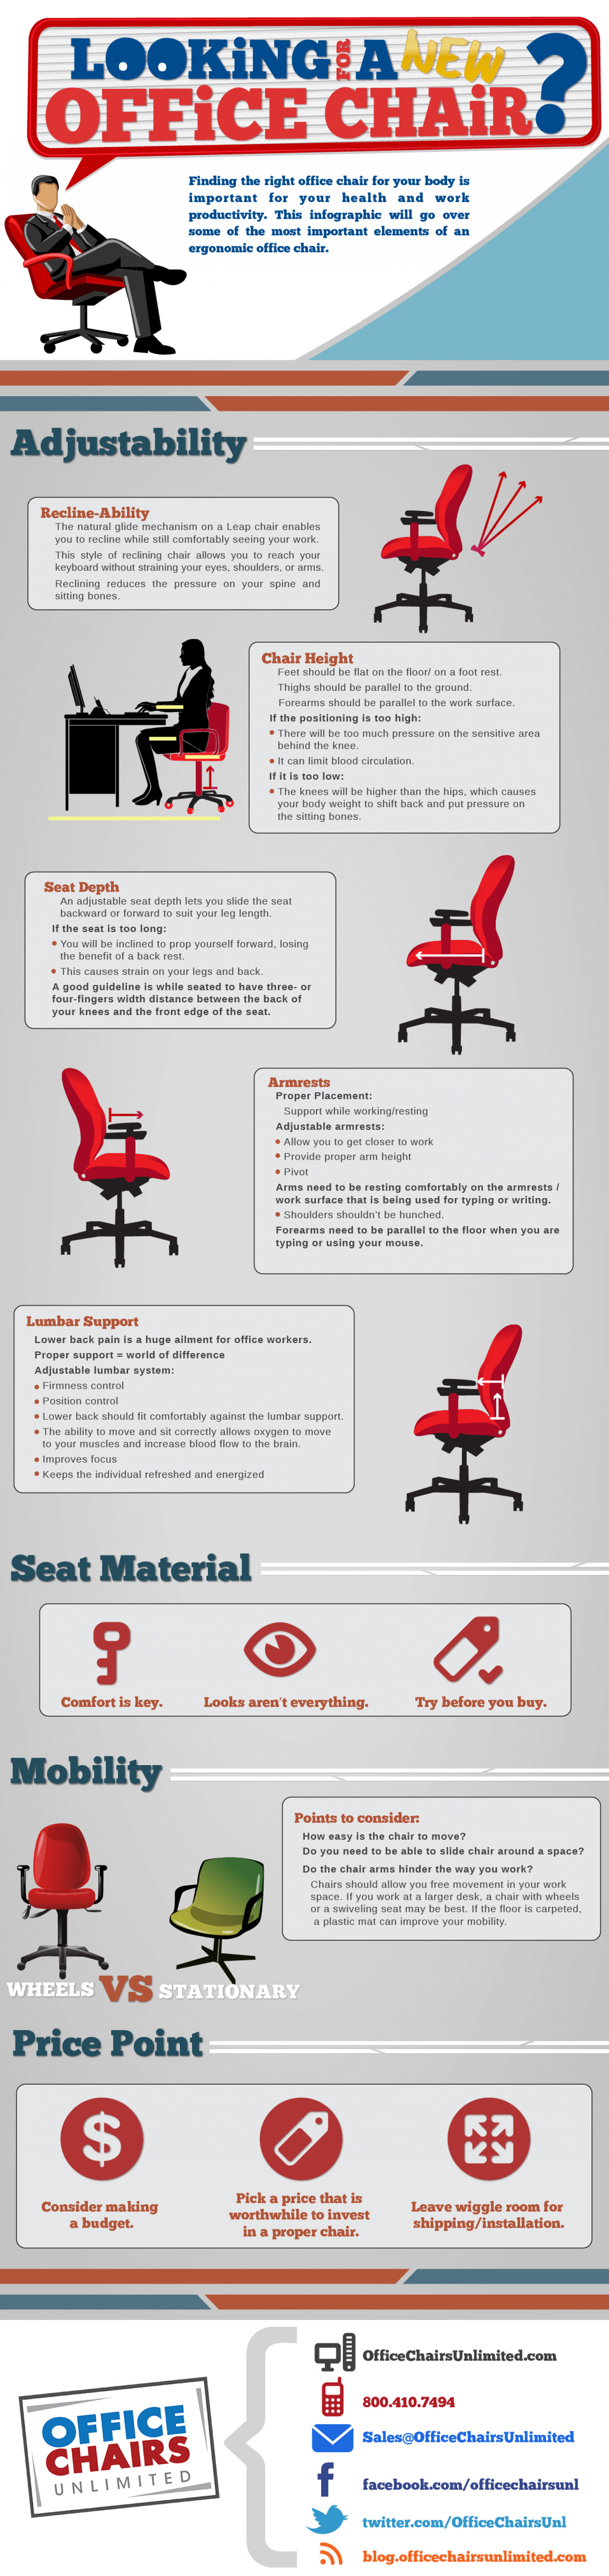 Looking for a New Office Chair Infographic